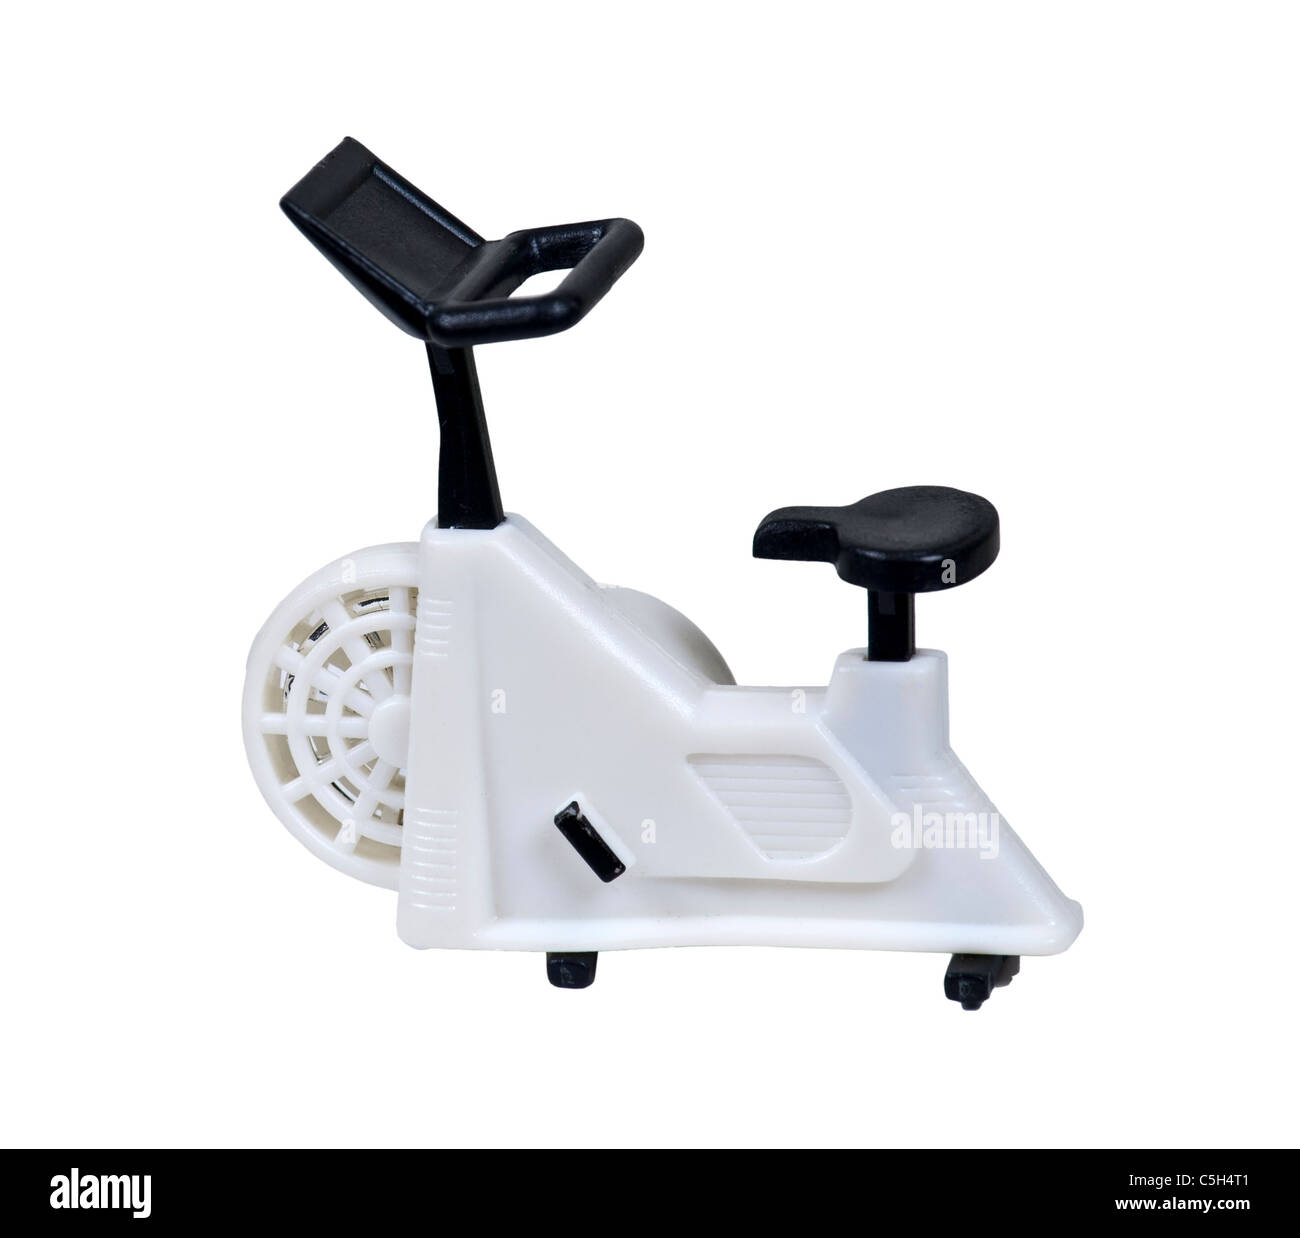 White exercise bike used for non-transport peddling for health fitness - path included - Stock Image